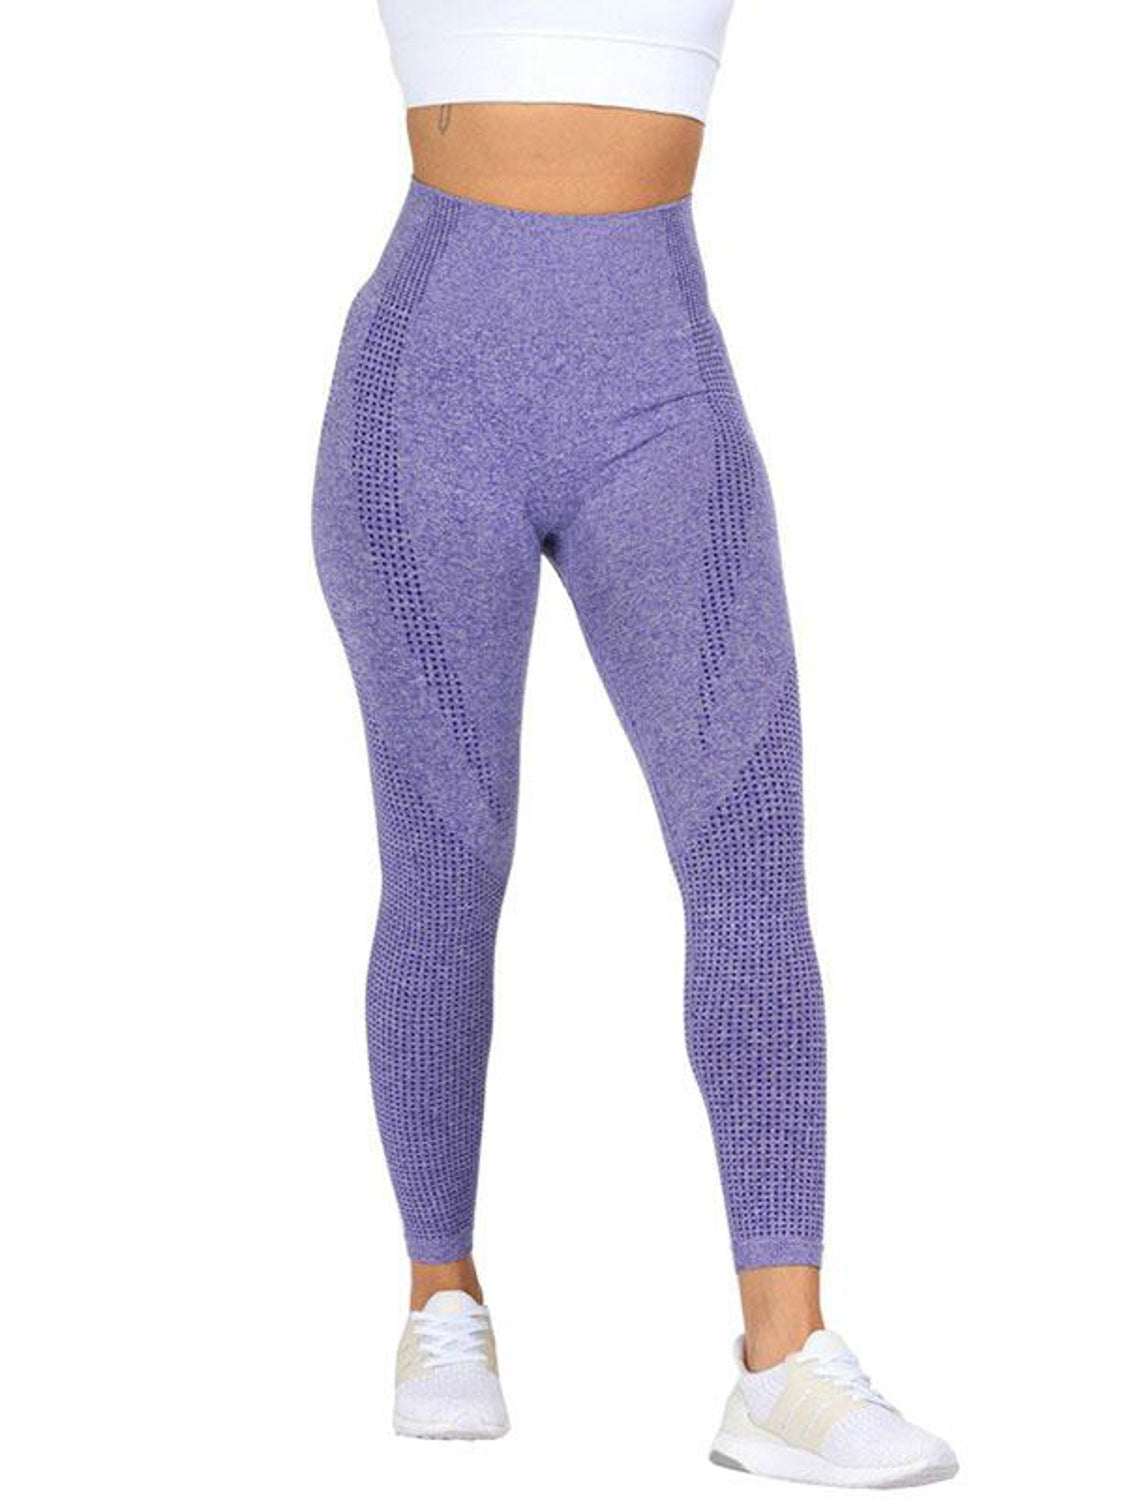 MOVI Sculpt+ Flex Full Length Legging in Indigo